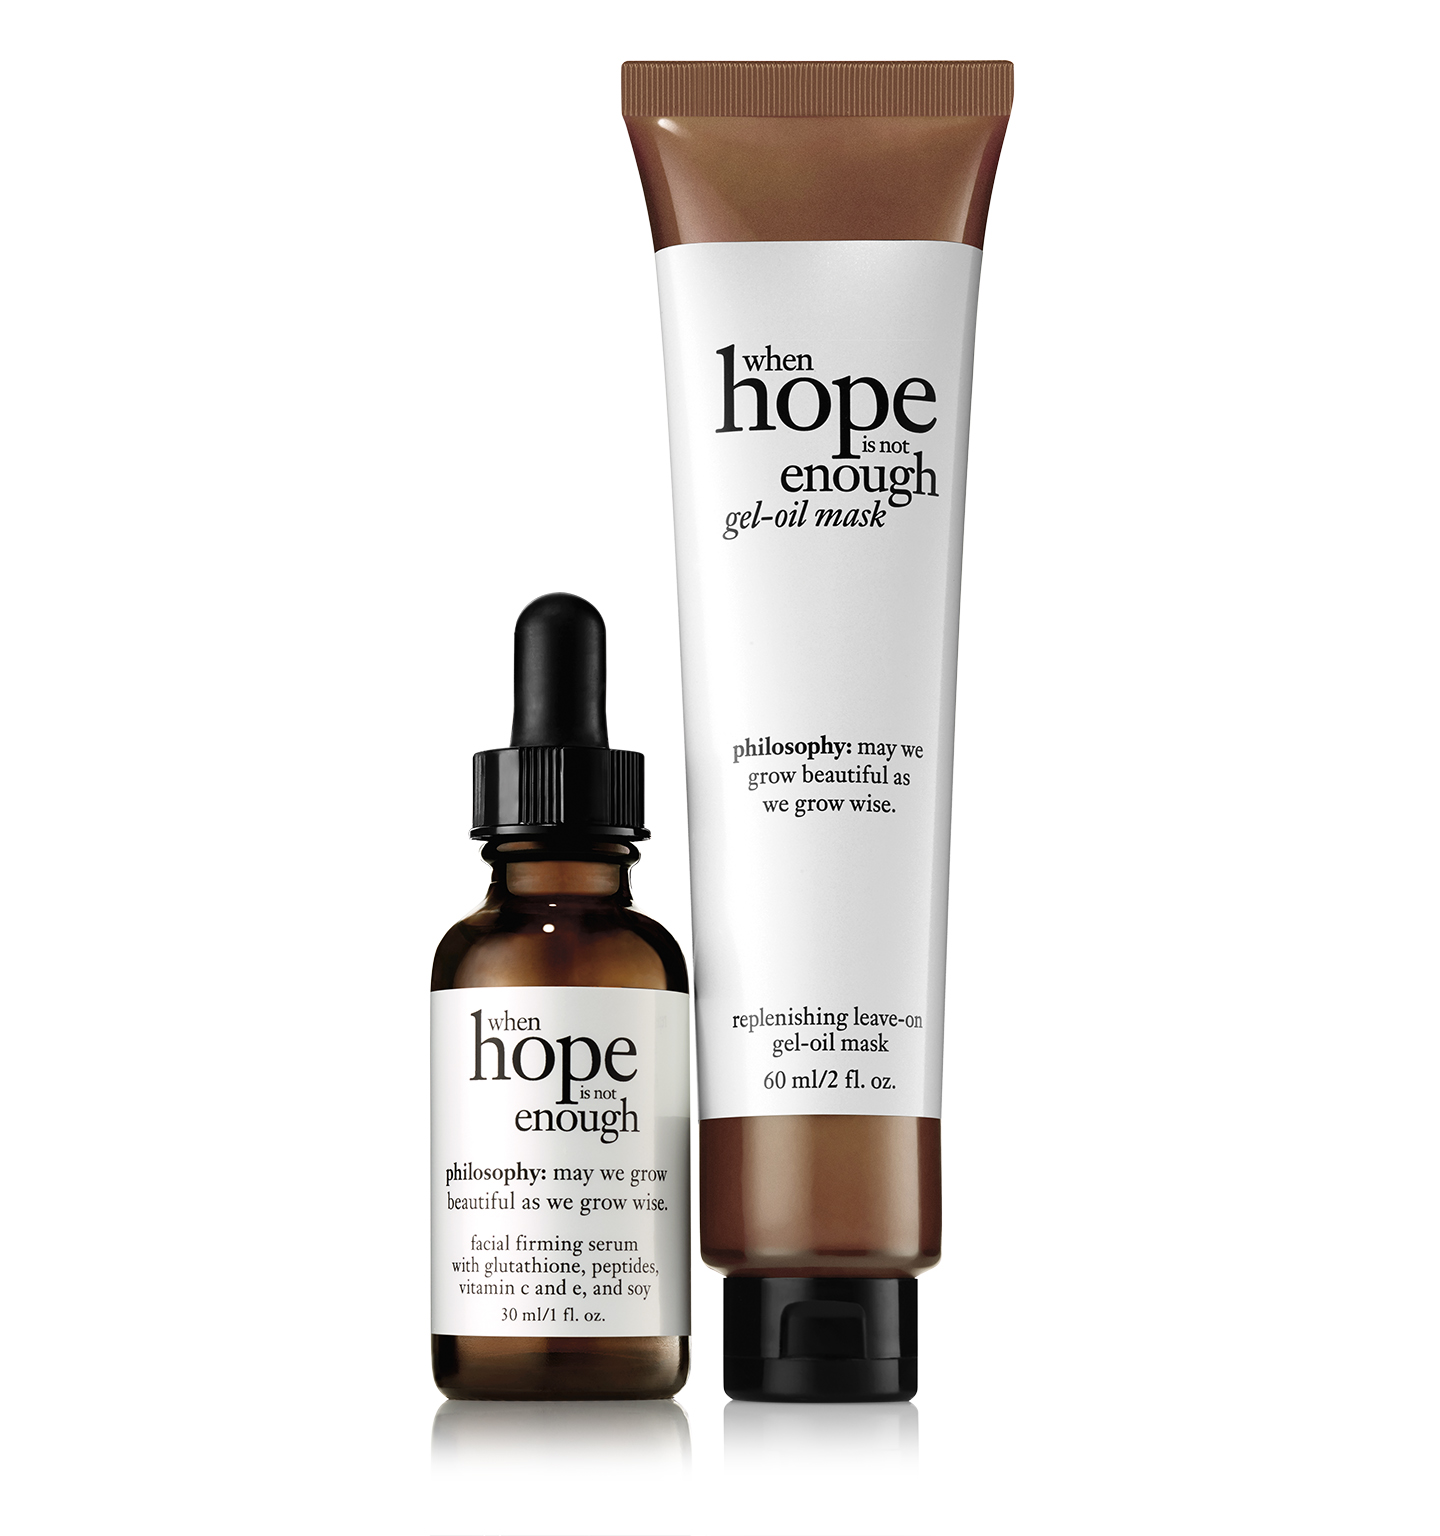 philosophy, when hope is not enough day serum and mask